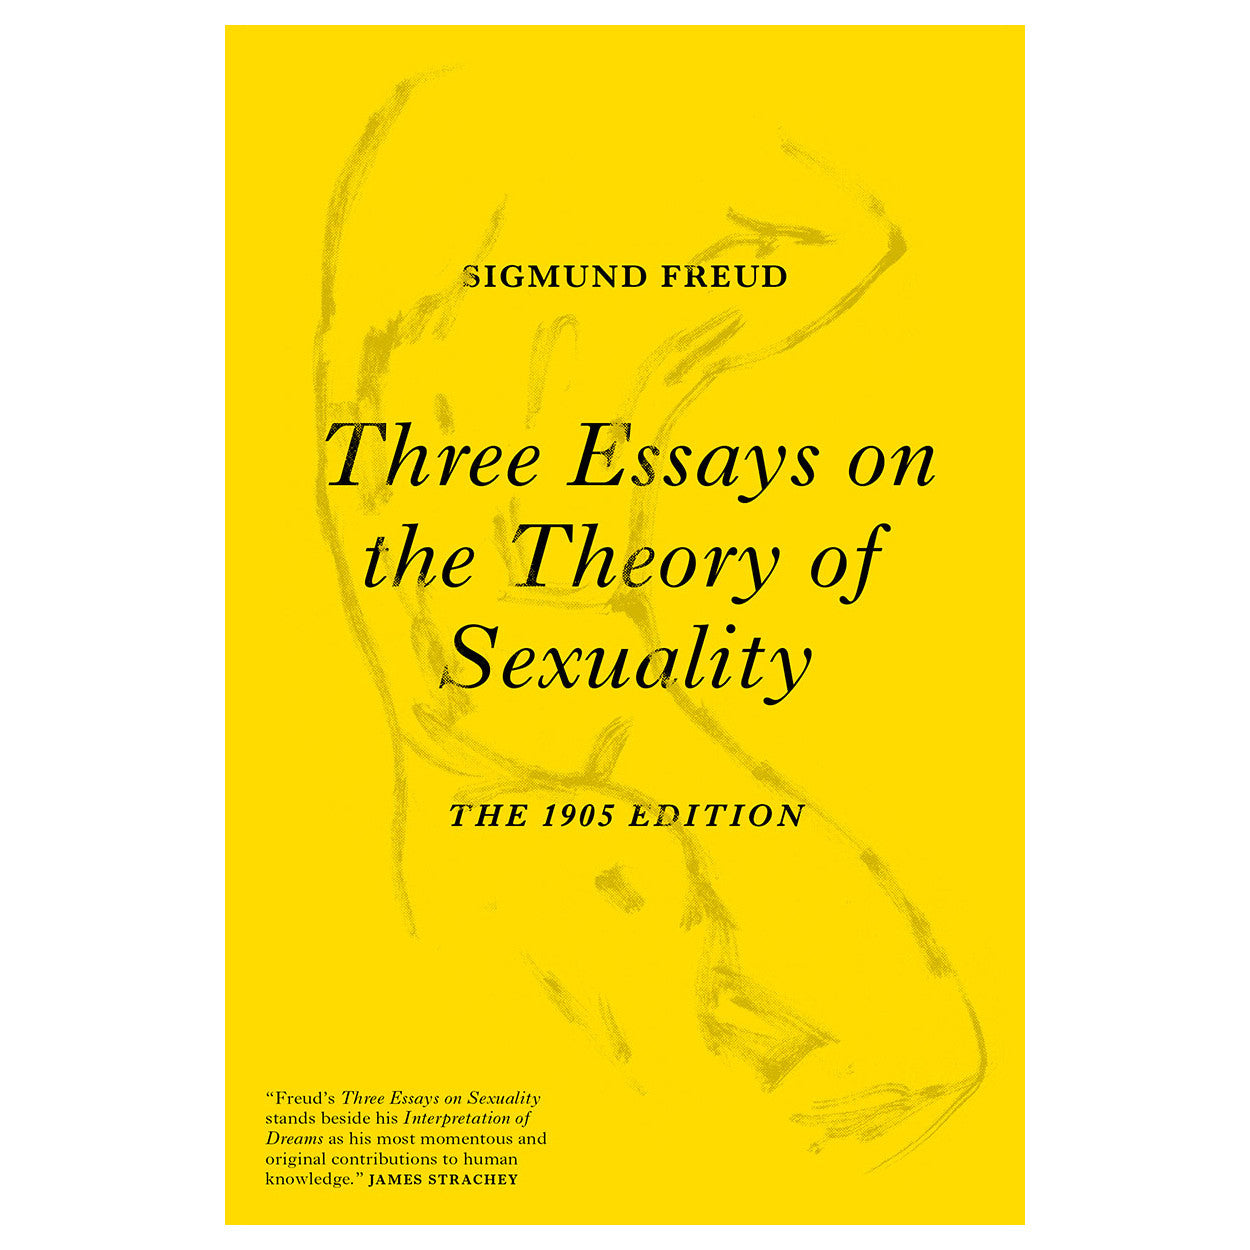 three essays on the theory of sexuality the edition three essays on the theory of sexuality the 1905 edition sigmund freud